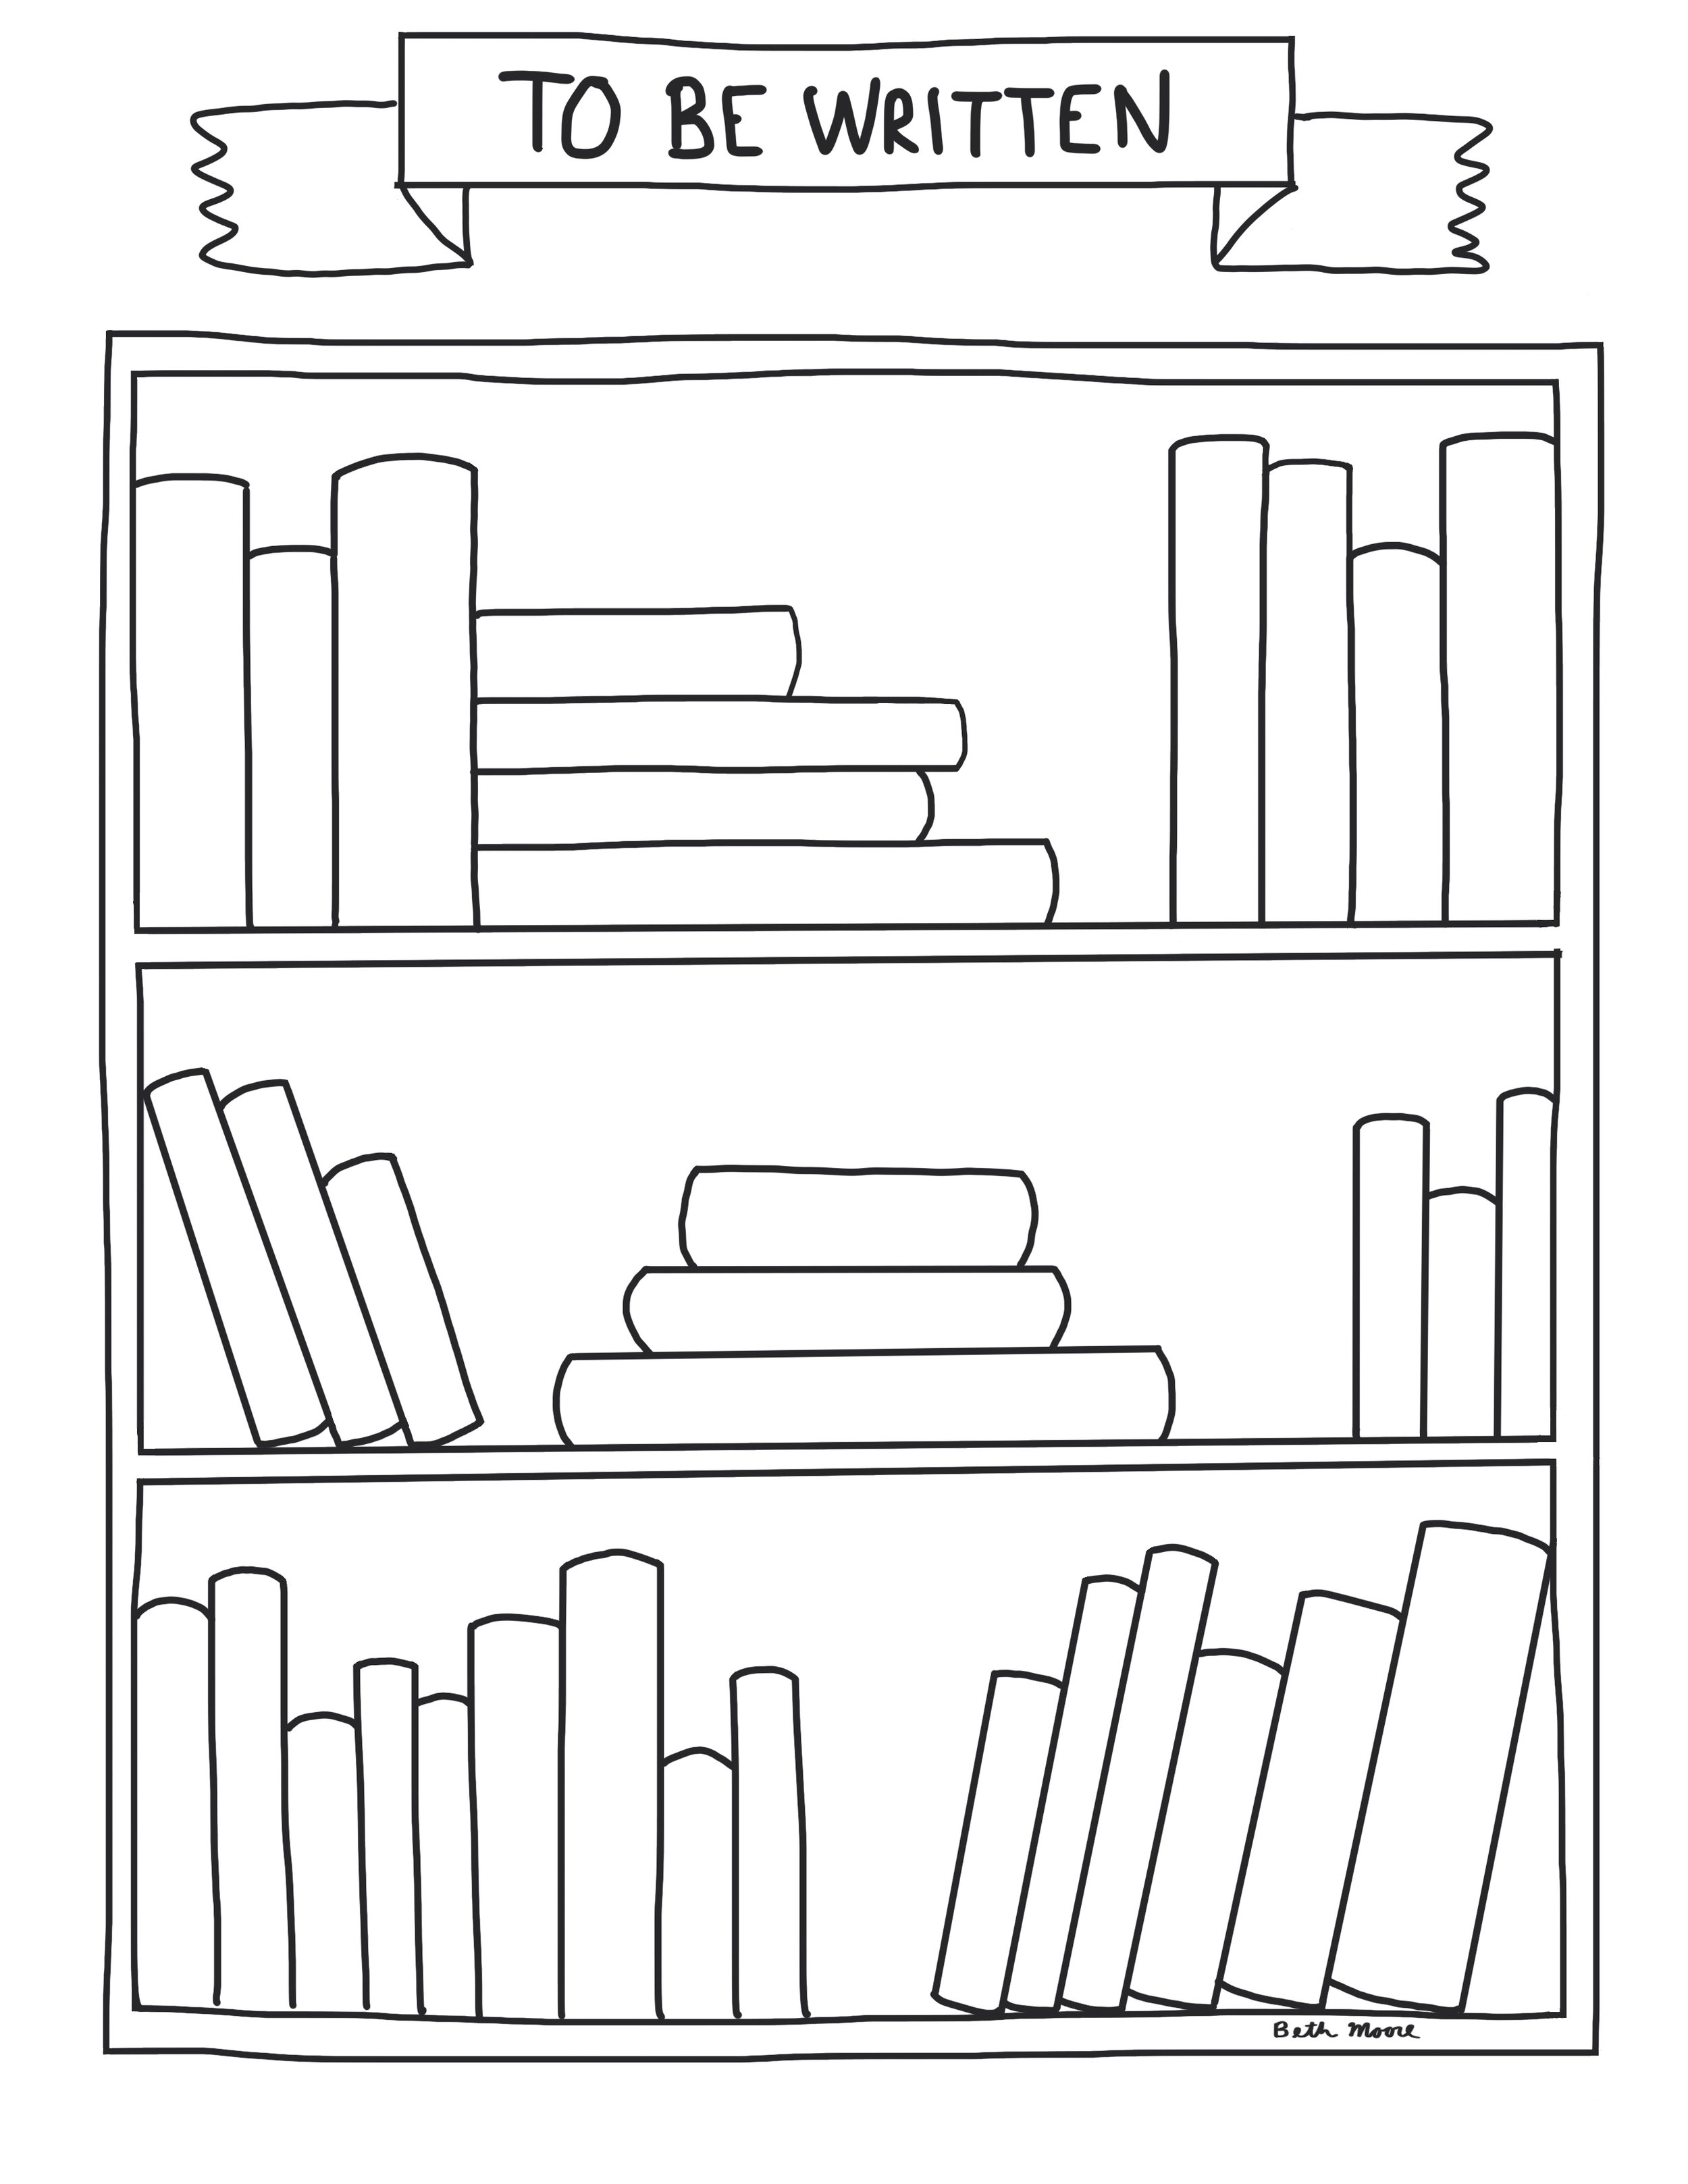 To Be Written Bookshelf - Reading great books often leads to great ideas for writing. Here's a bookshelf to help readers envision the books they might write.